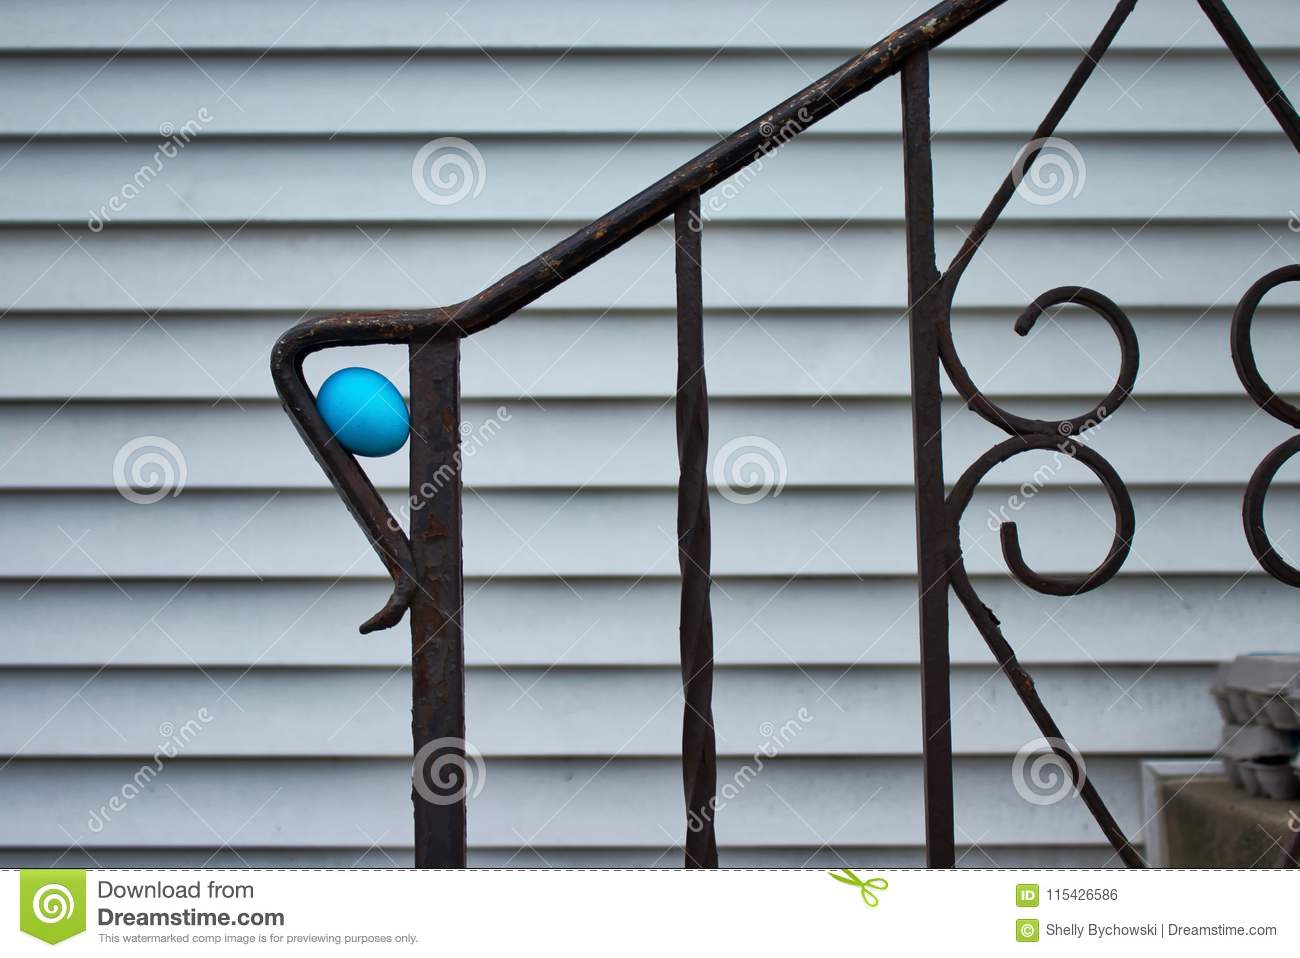 Blue dyed Easter egg, hidden for an egg hunt, in crook of fence railing on concrete stairs of midwestern home.